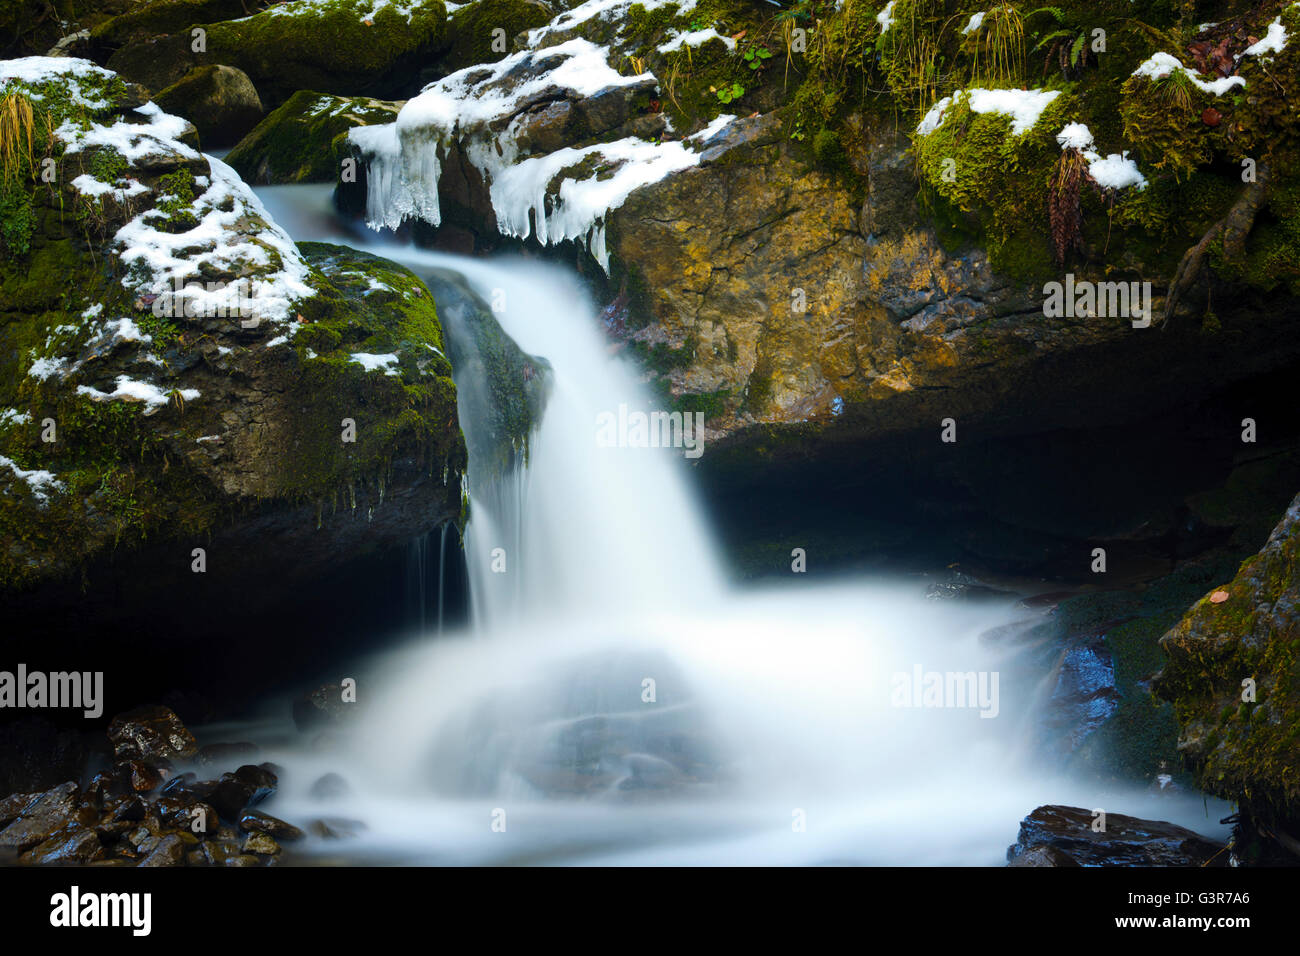 Small waterfall during winter with motion blur, Haute Savoie, France. Stock Photo